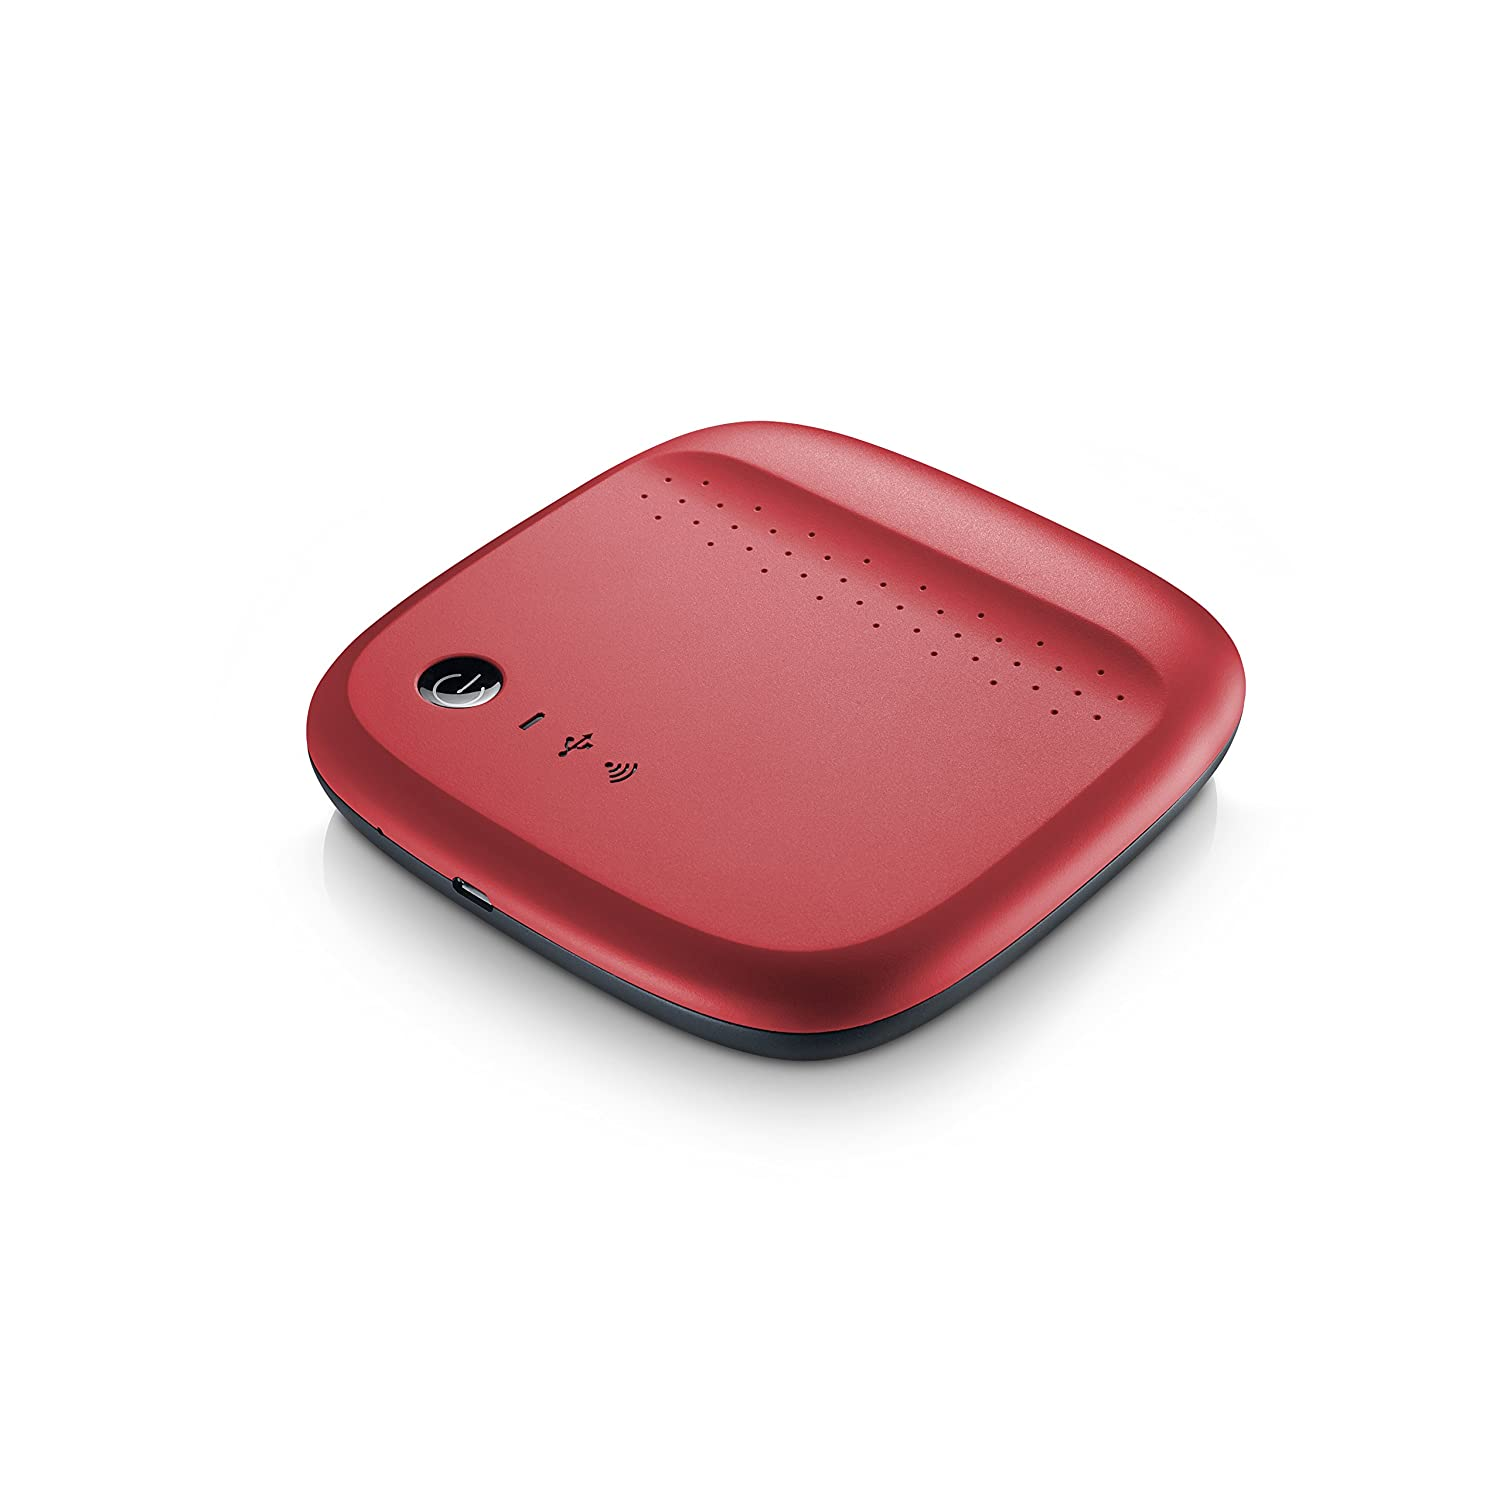 STDC500402 Wireless 500GB - Red